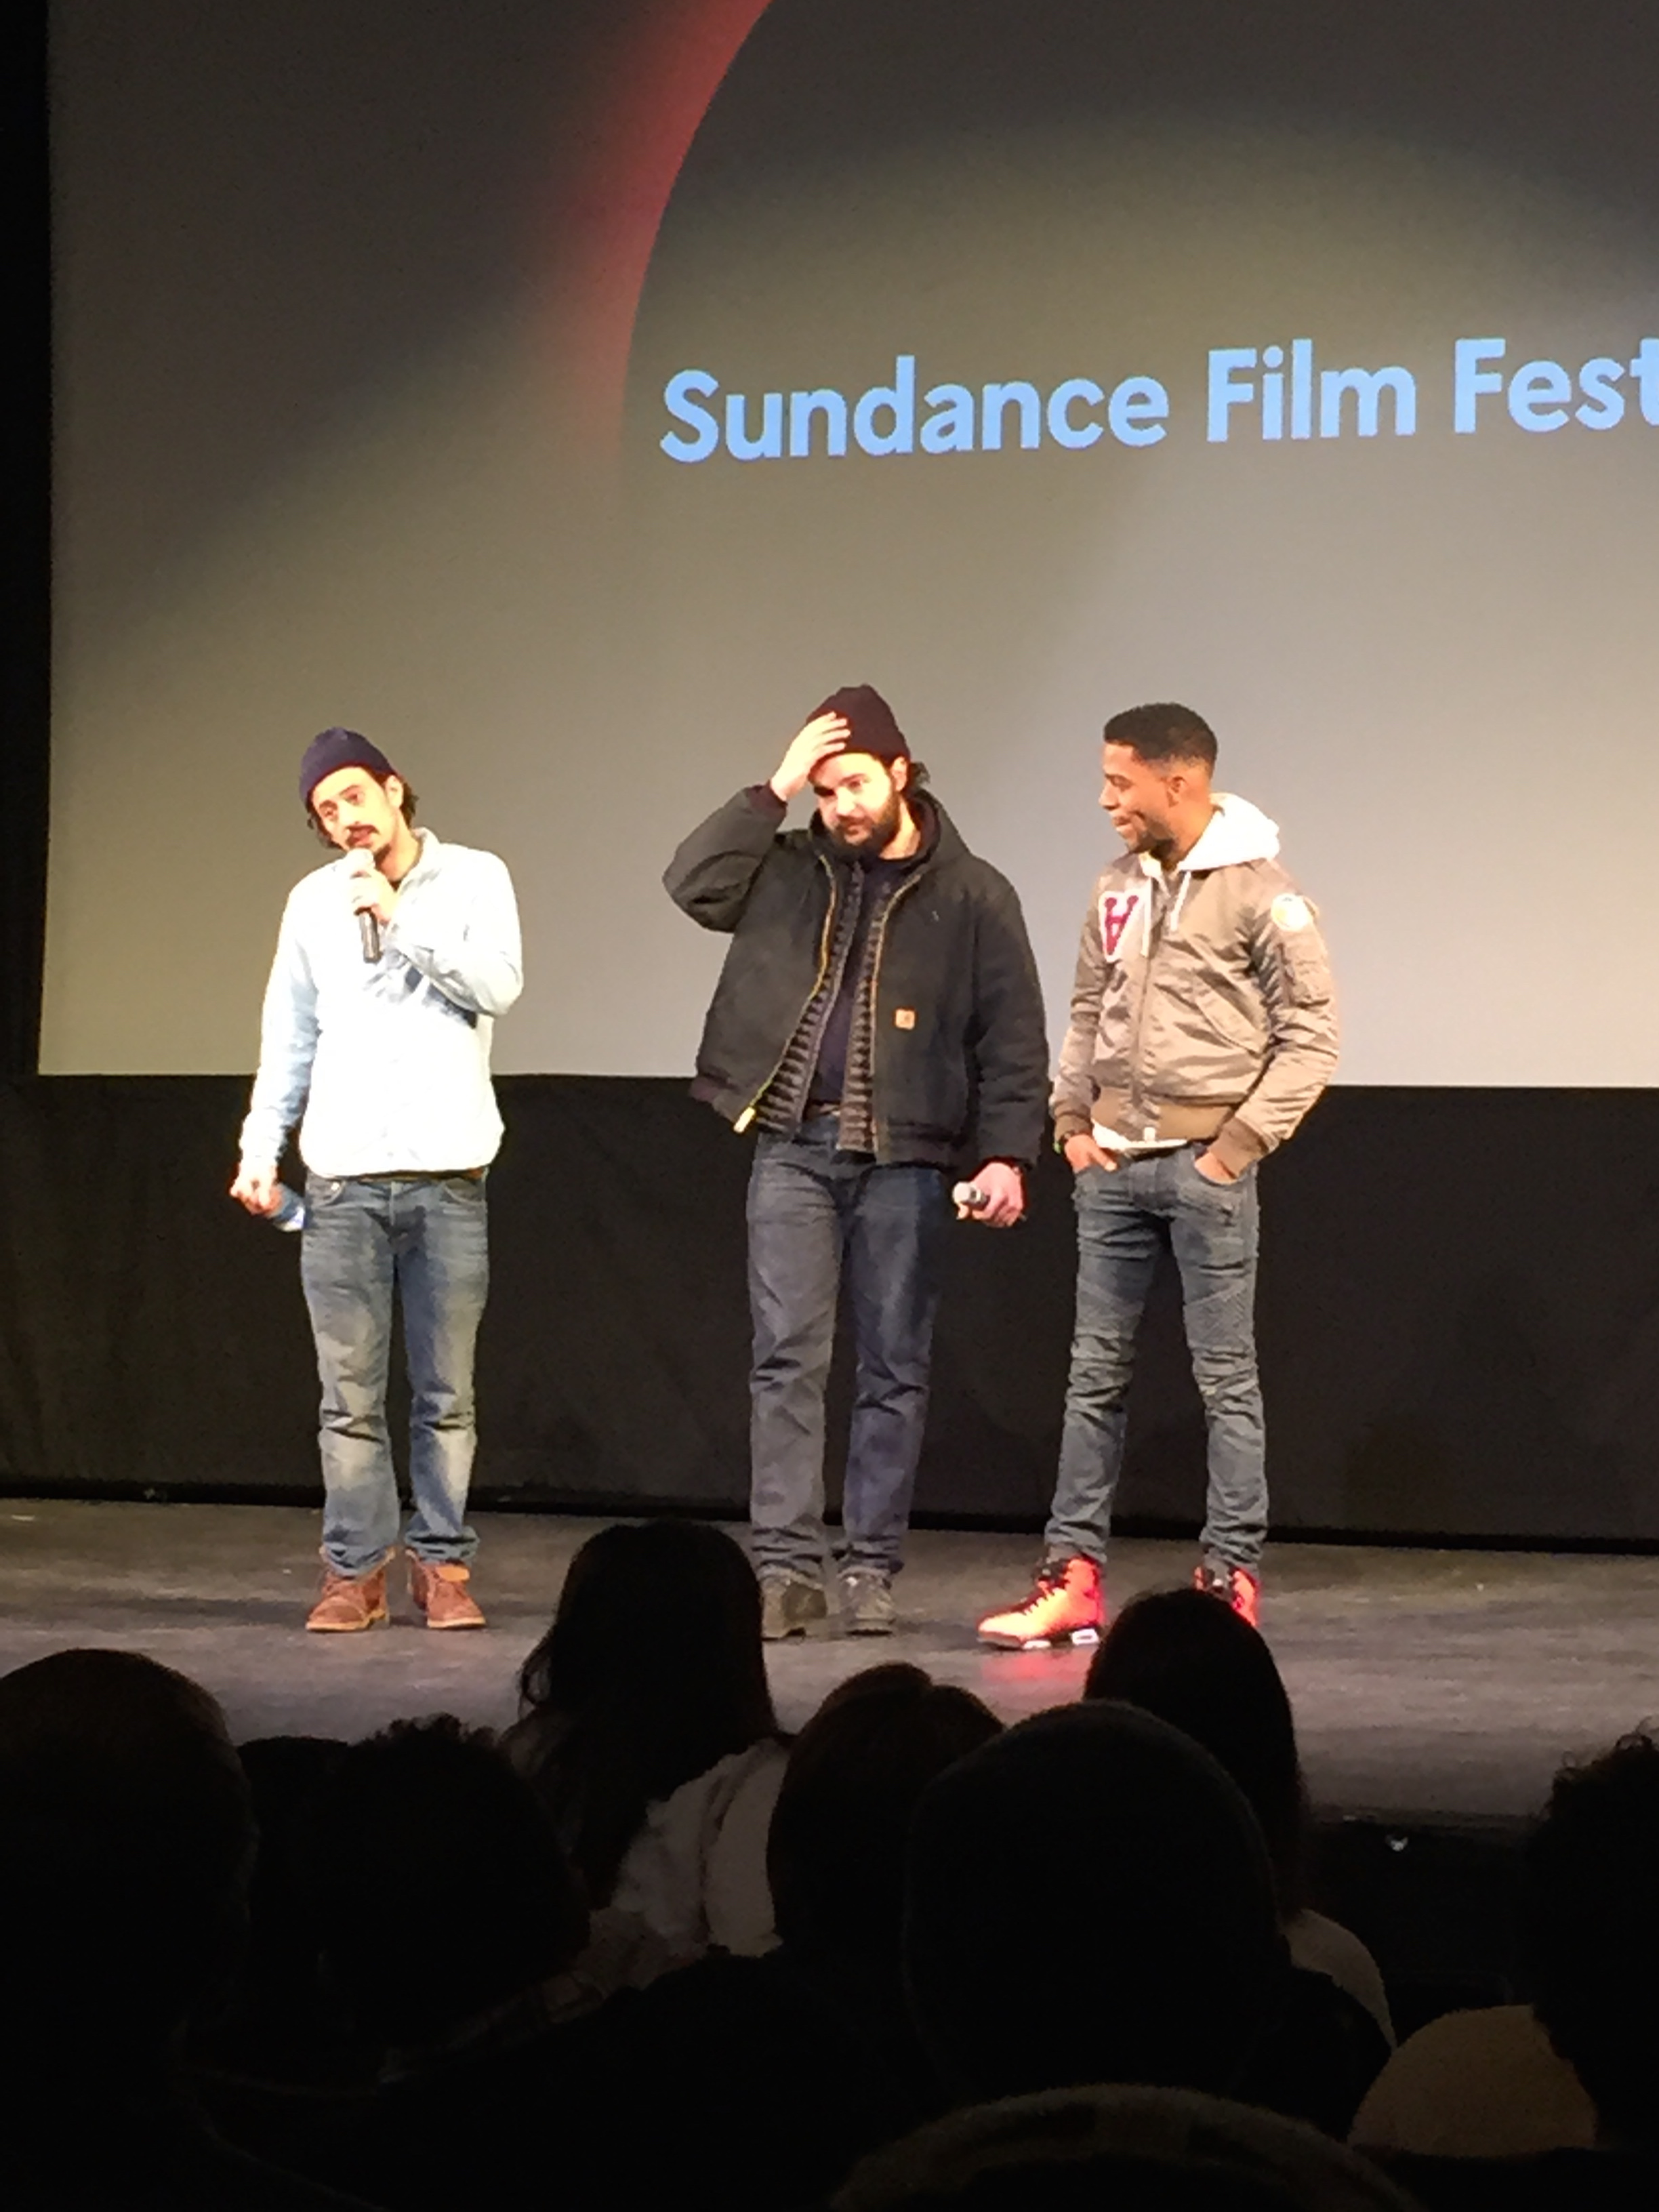 James White screening at the Egyptian. With director Josh Mond and actors Christopher Abbott and Kid Cudi